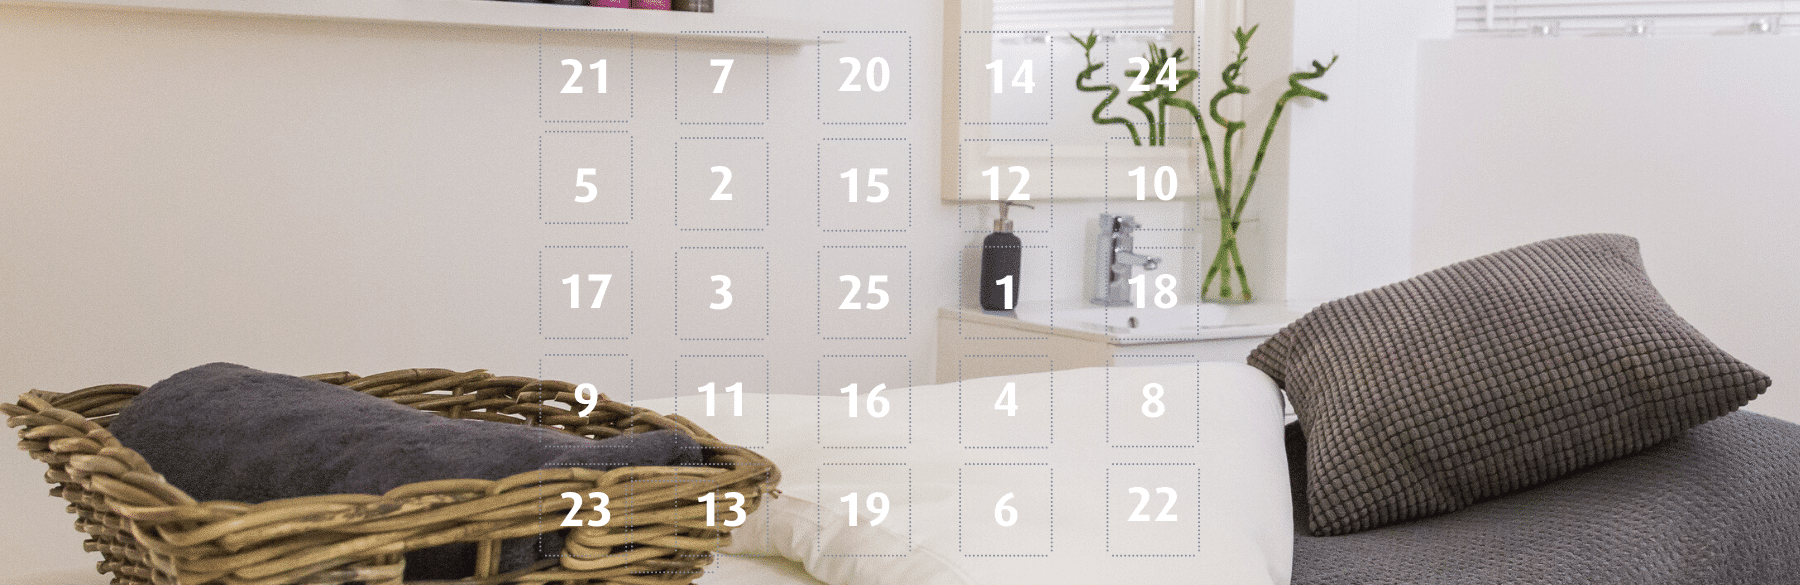 The Spa Therapy Room Advent Calendar